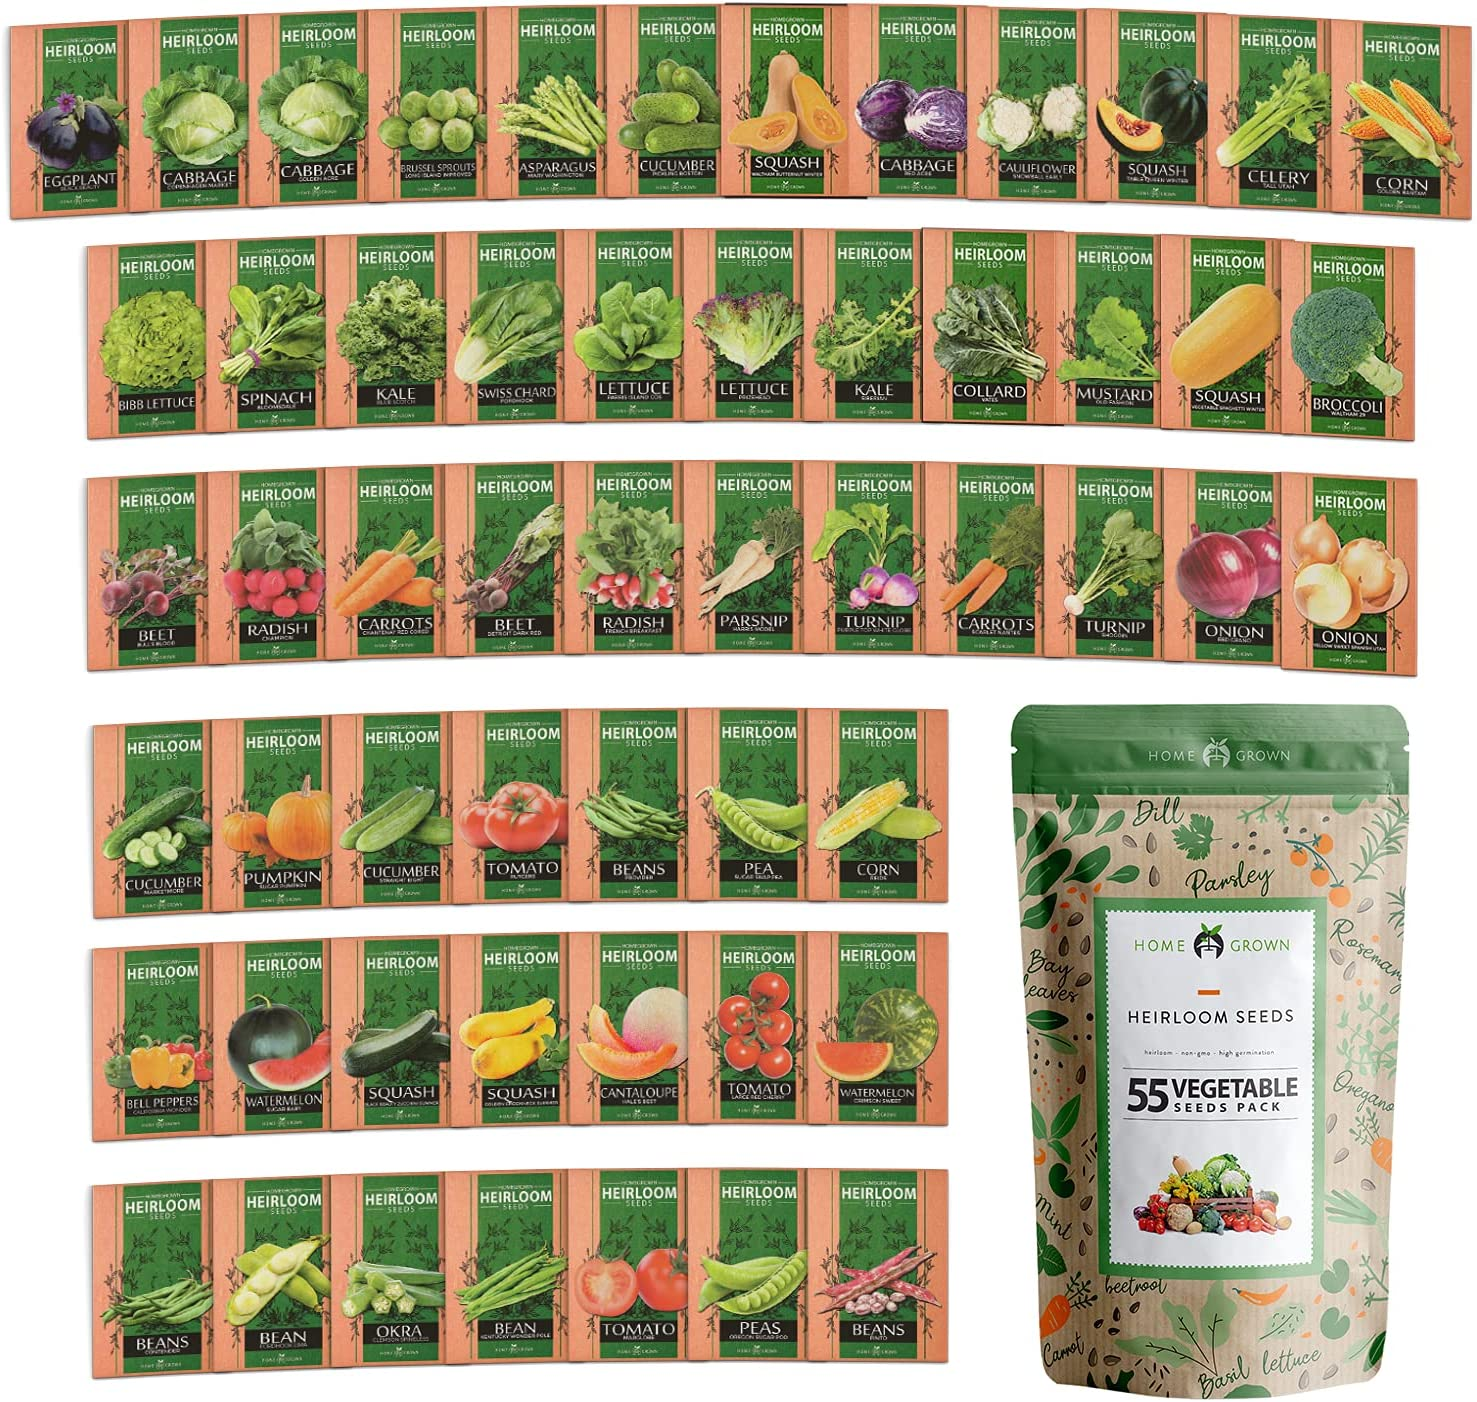 Heirloom Vegetable Seeds - 25,300+ Seeds - 55 Variety of Non GMO Vegetable Seeds for Planting Home Garden, Homestead and Survival Gardening Seeds - Seeds for Planting Fruits and Vegetables